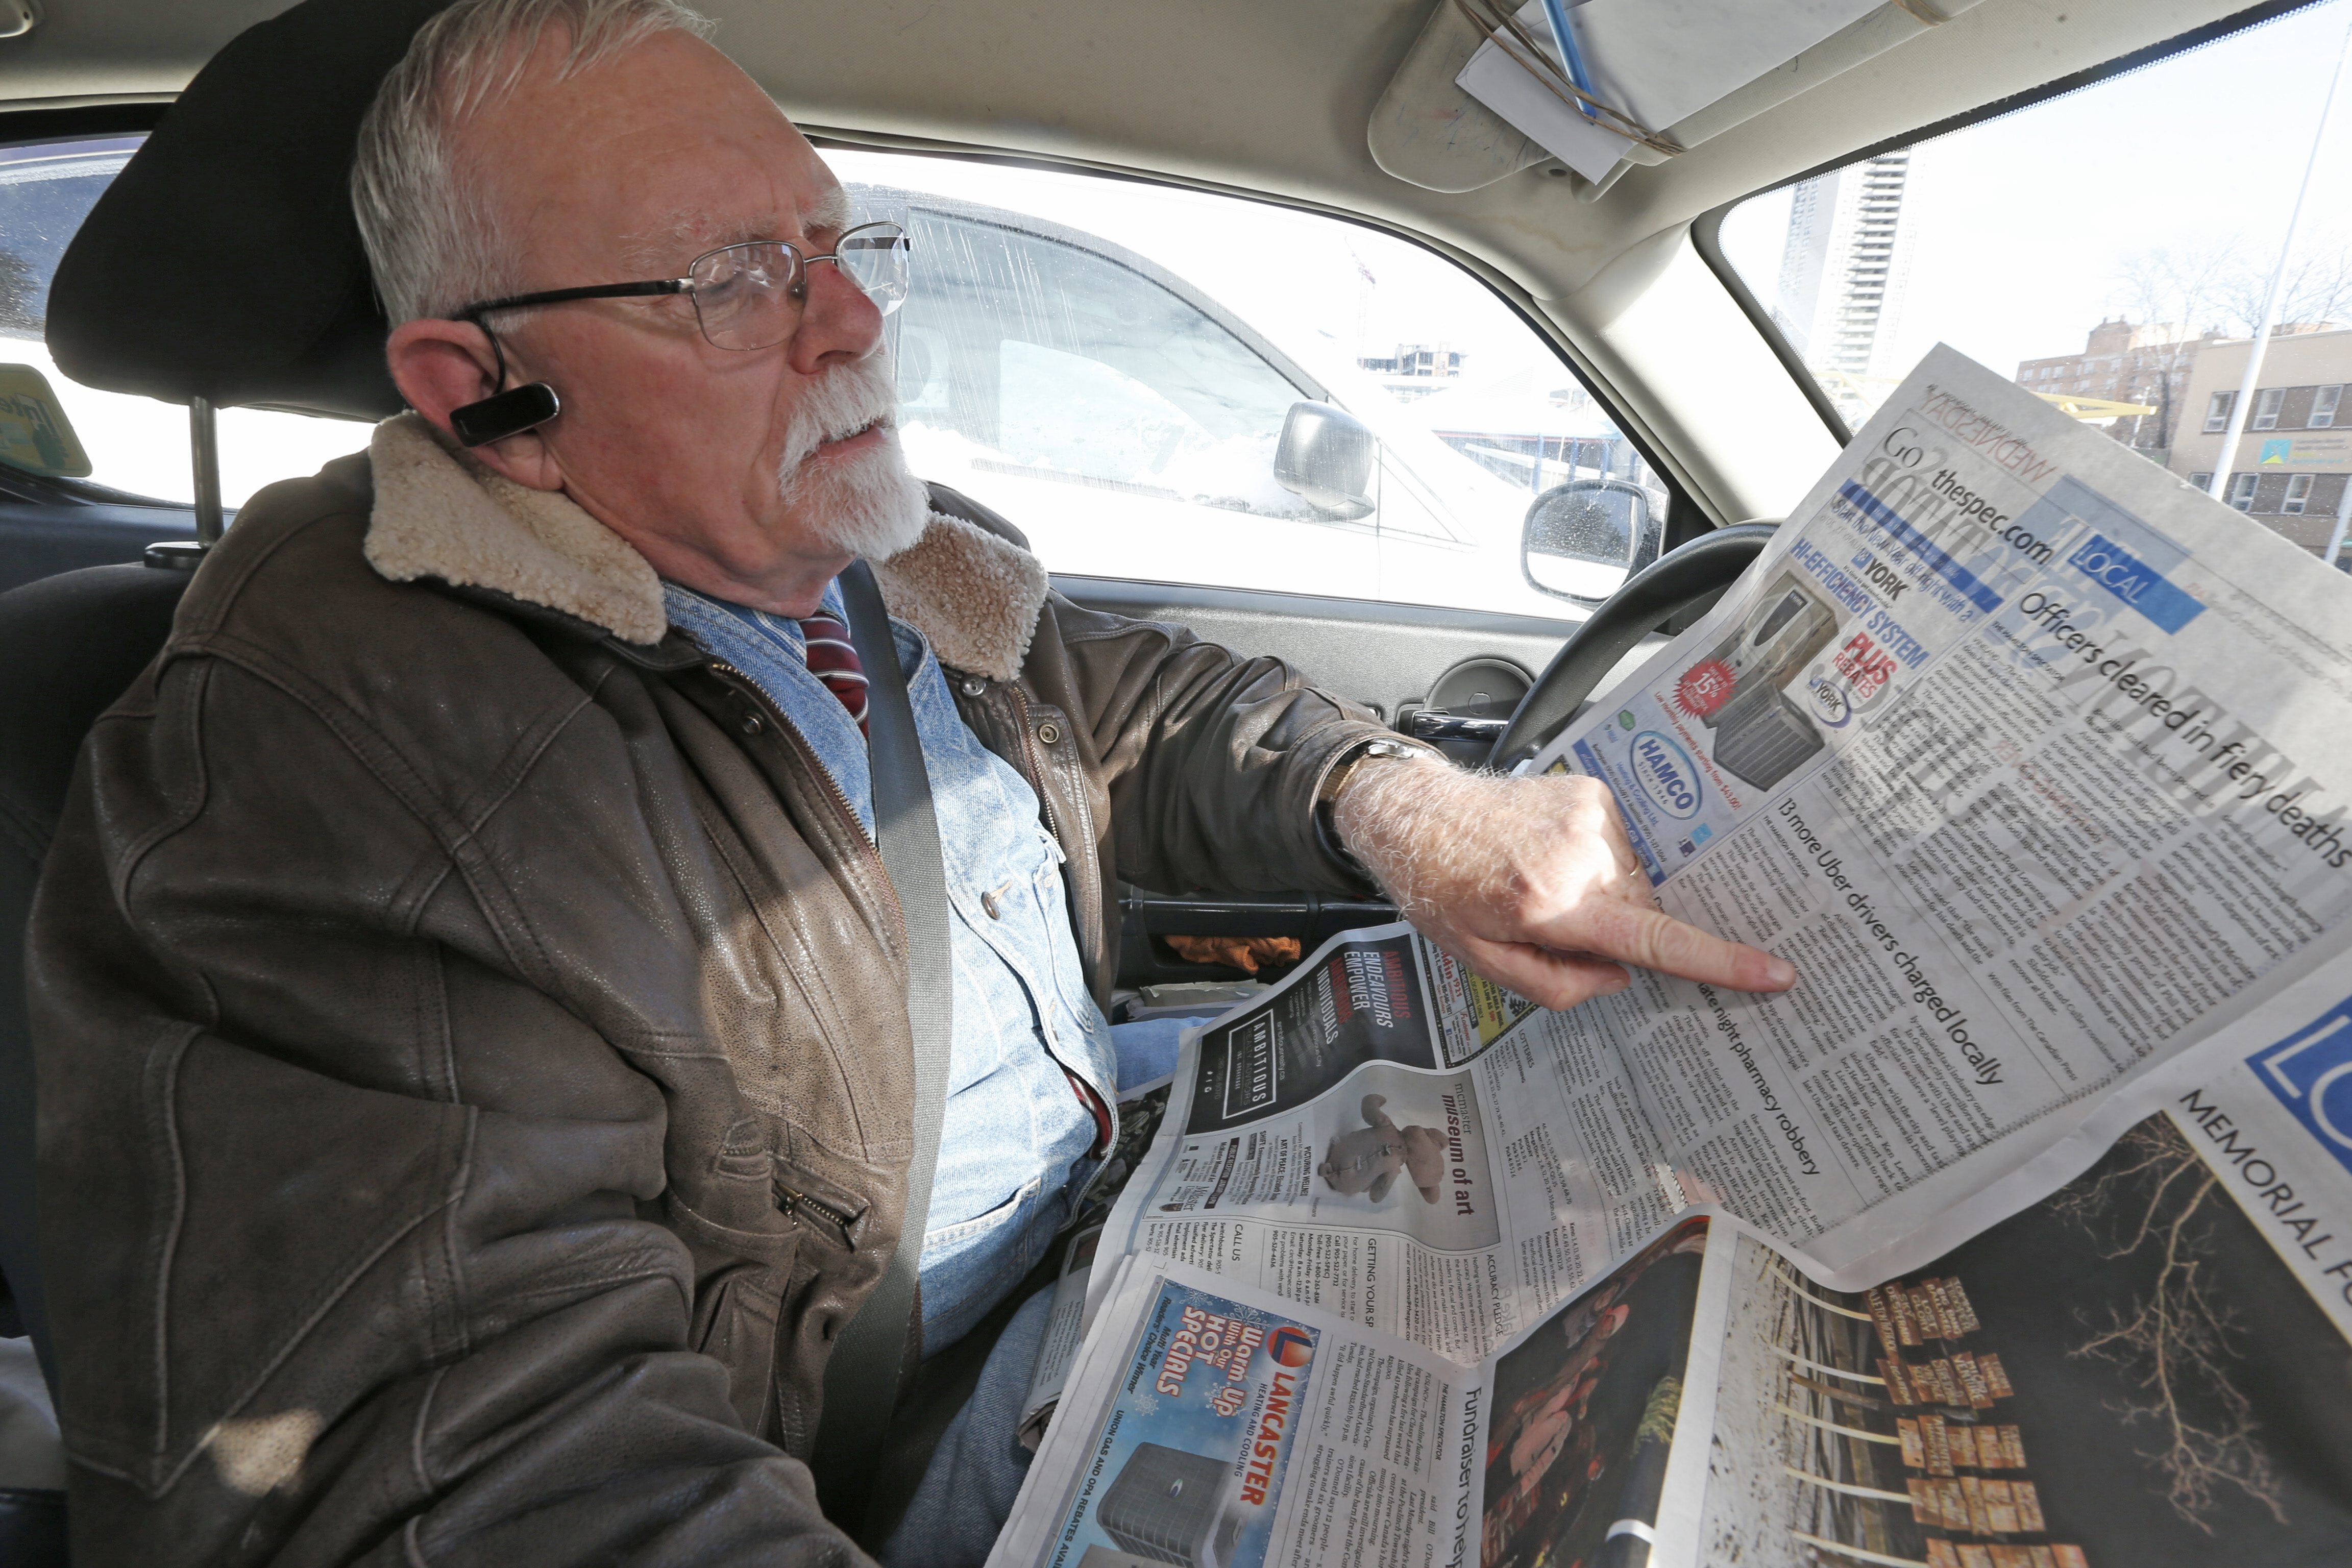 In Hamilton, Ont., cab driver Bill Cranston points out a headline in the Hamilton Spectator that said that Uber drivers had been charged for not having taxi licenses.